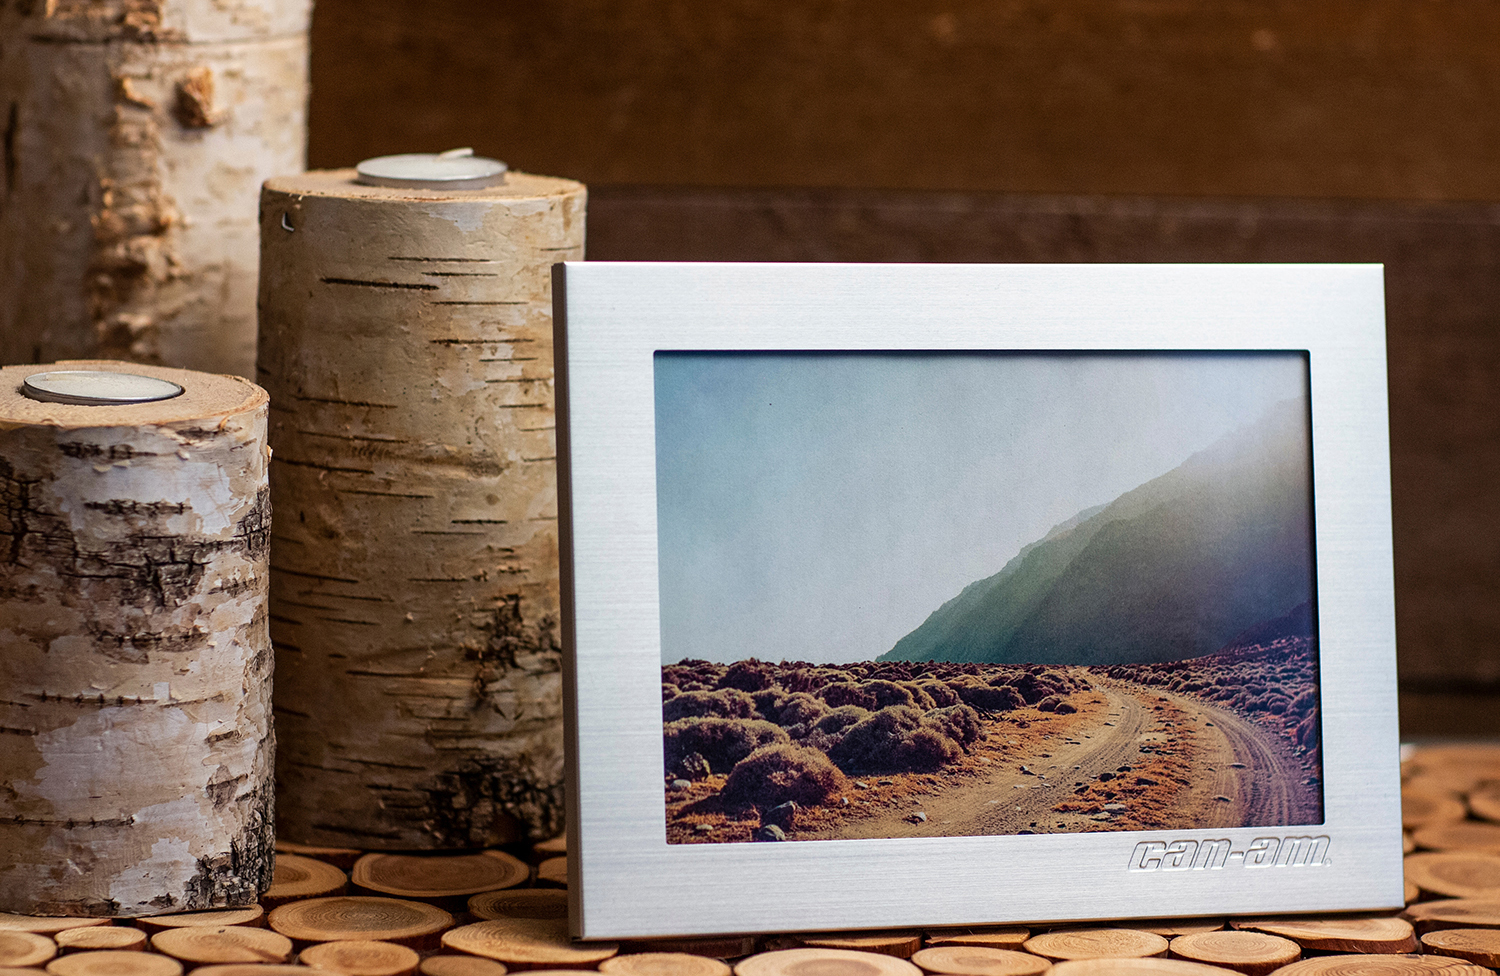 5-in. x 7-in. Can-Am photo frame